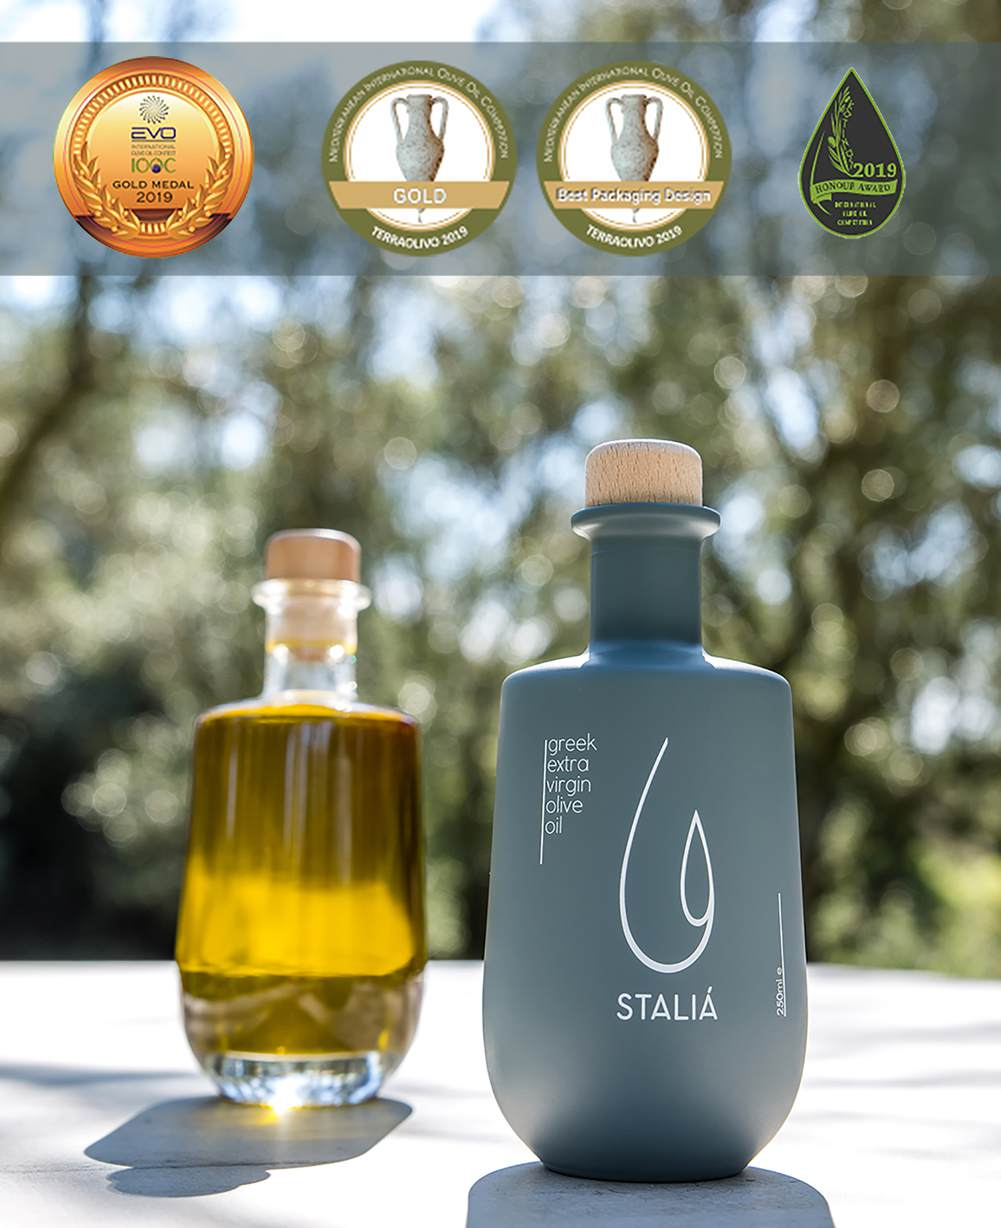 2019: More Awards for Staliá